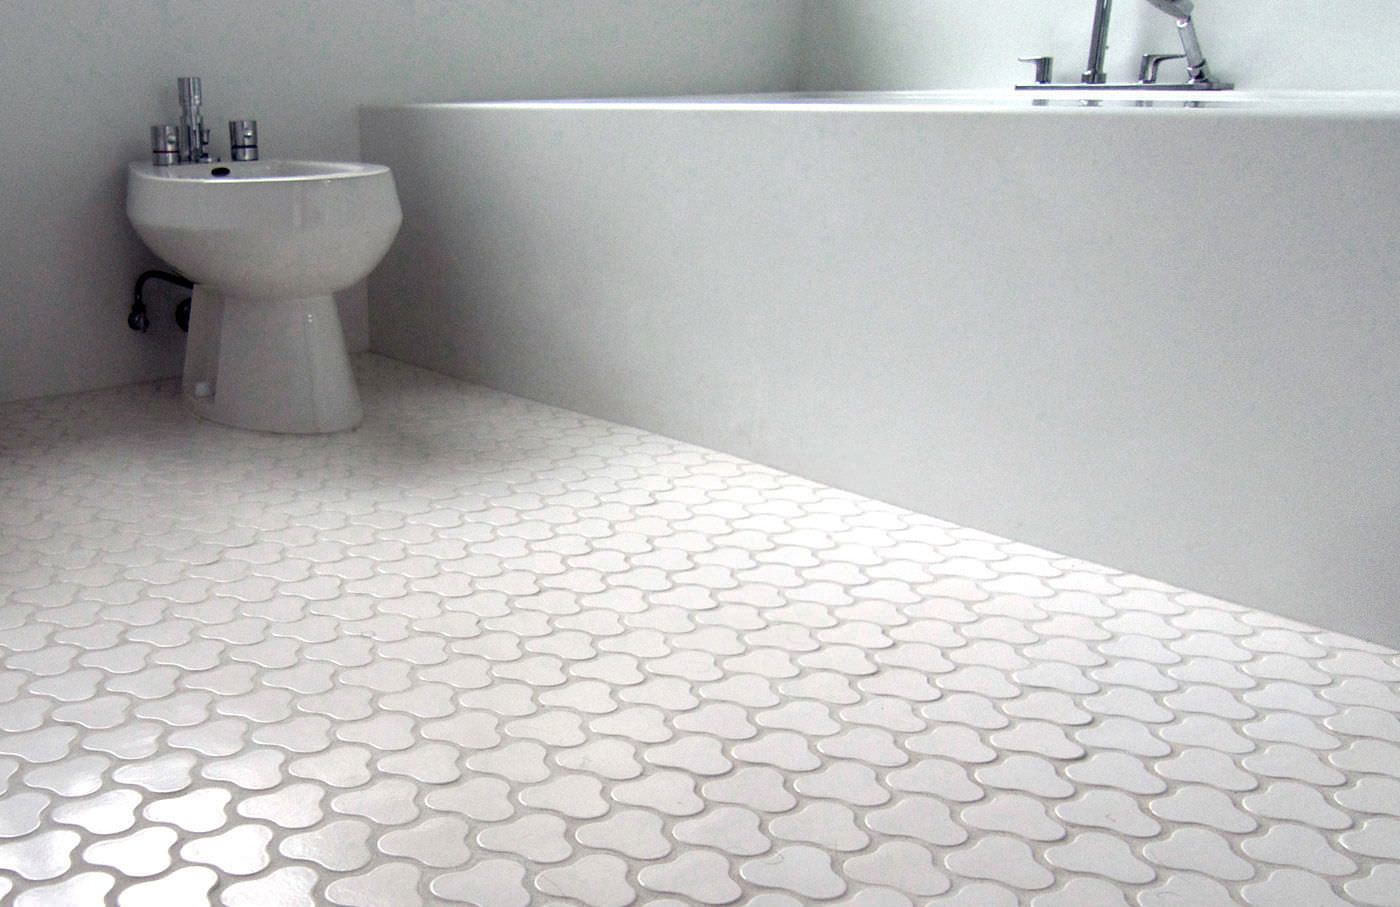 Ceramic Tile Bathroom Indoor Tile Bathroom Floor Ceramic Bom Daniel Ogassian